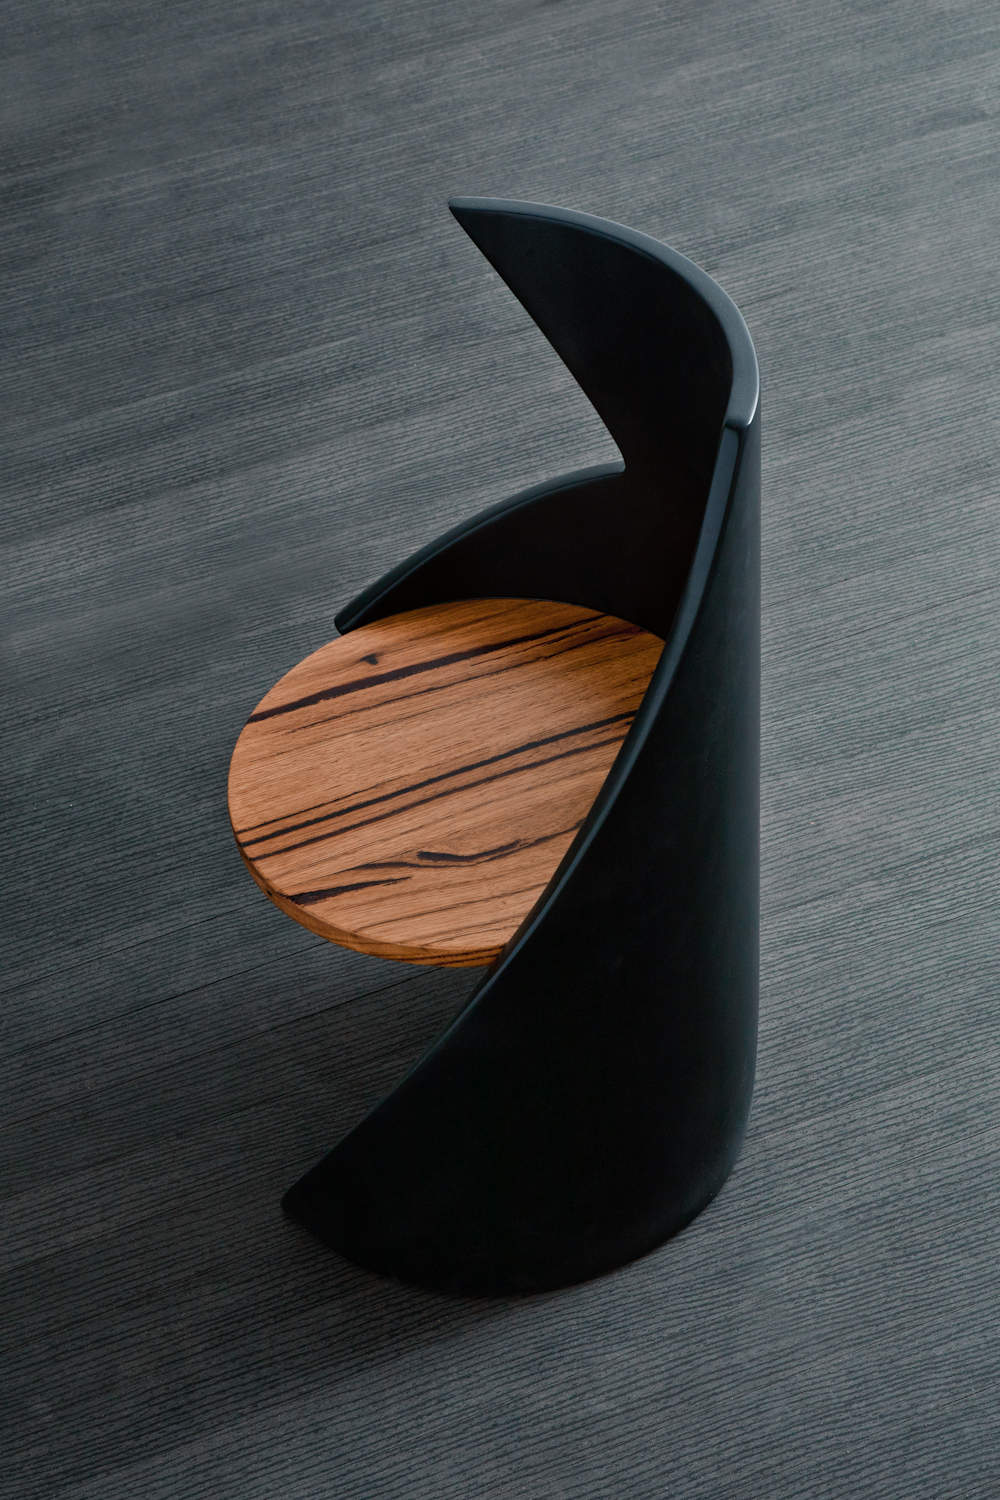 The house - inspired by exciting forms in architecture and recreating that in this shapely chair changing its appearance depending what angle you catch it at. using the same techniques as mr potato head 2.0 to get the gentle soft curves, this is one seriously funky chair